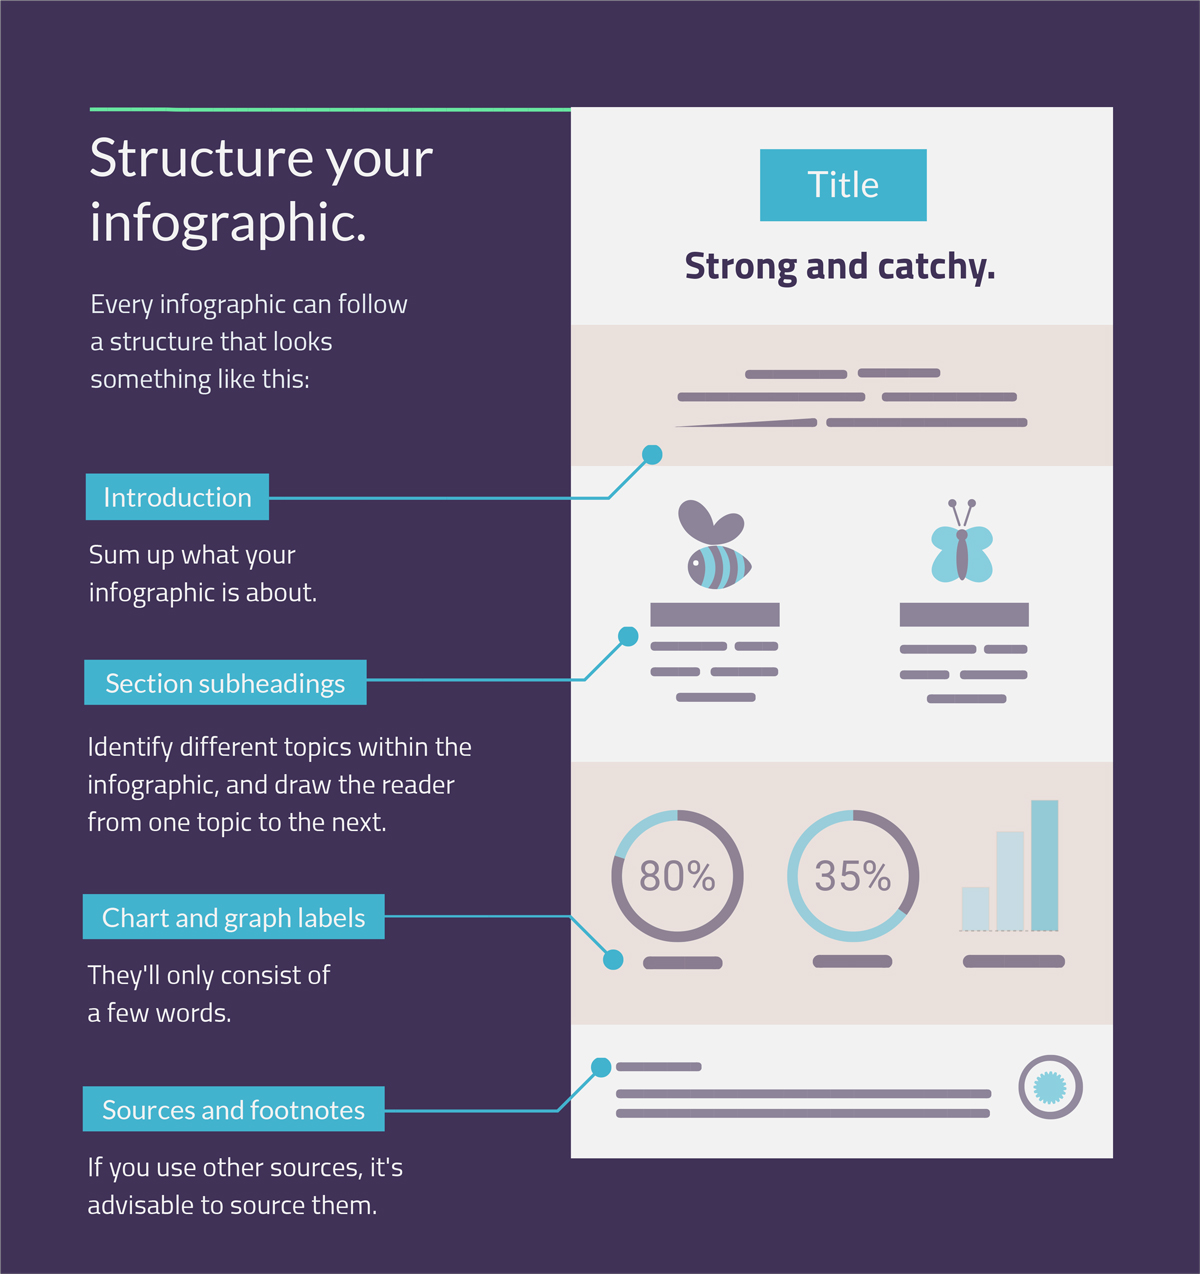 7-Steps-to-Writing-Compelling-Infographic-Structure-your-infographic how to write an infographic